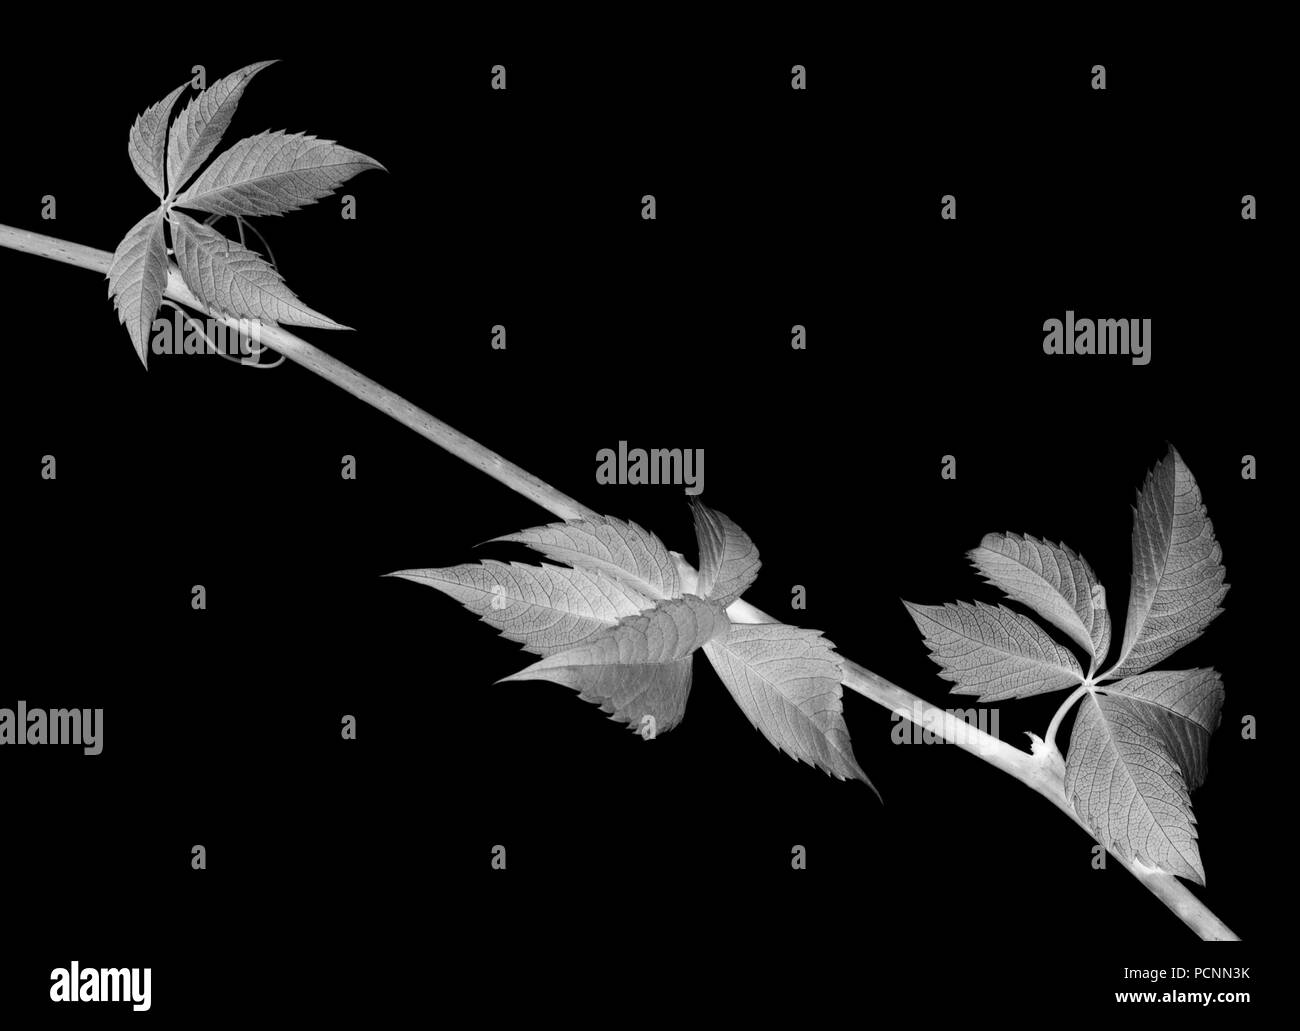 Twig of grapes leaves, parthenocissus quinquefolia foliage. Isolated on black background. Negative picture. - Stock Image